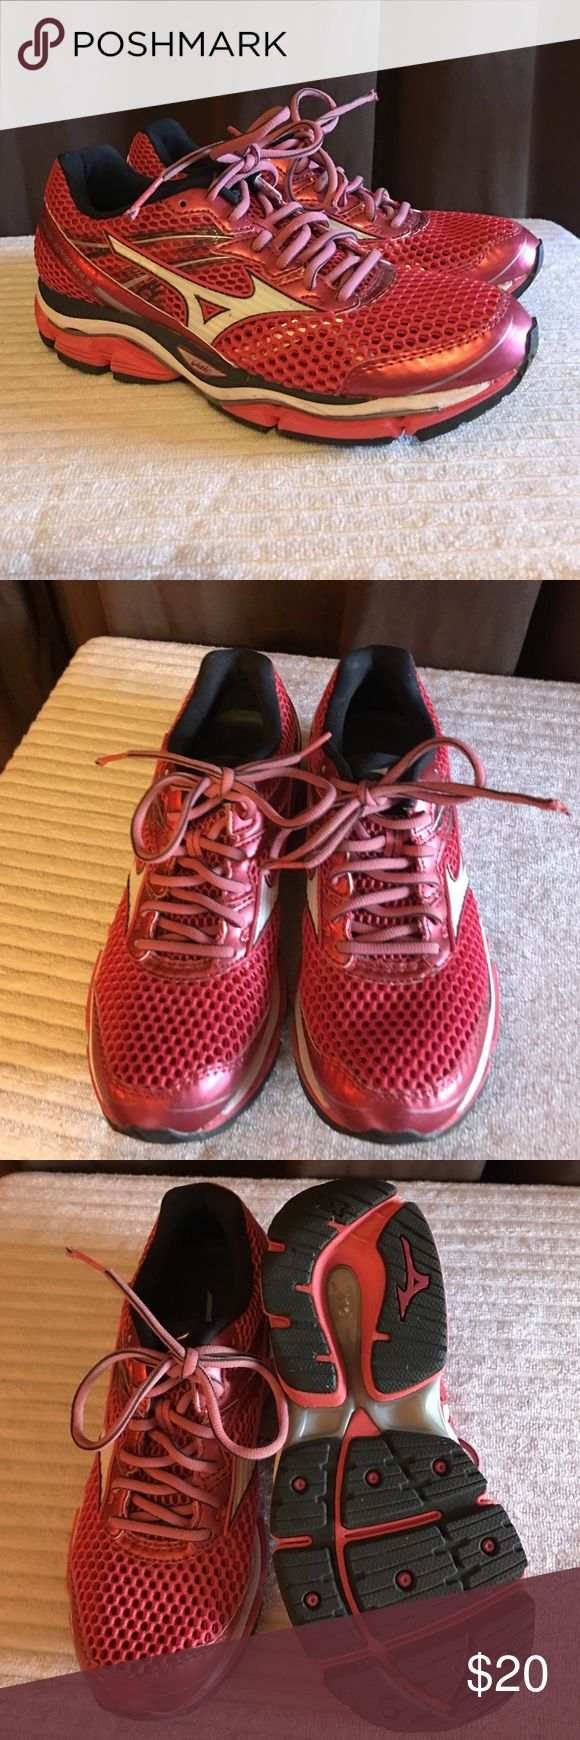 Mizuno Wave Enigma 5 Ladies running shoes Gently worn Ladies Mizuno Wave Enigma 5 running shoe in size 7.5 Mizuno Shoes Athletic Shoes